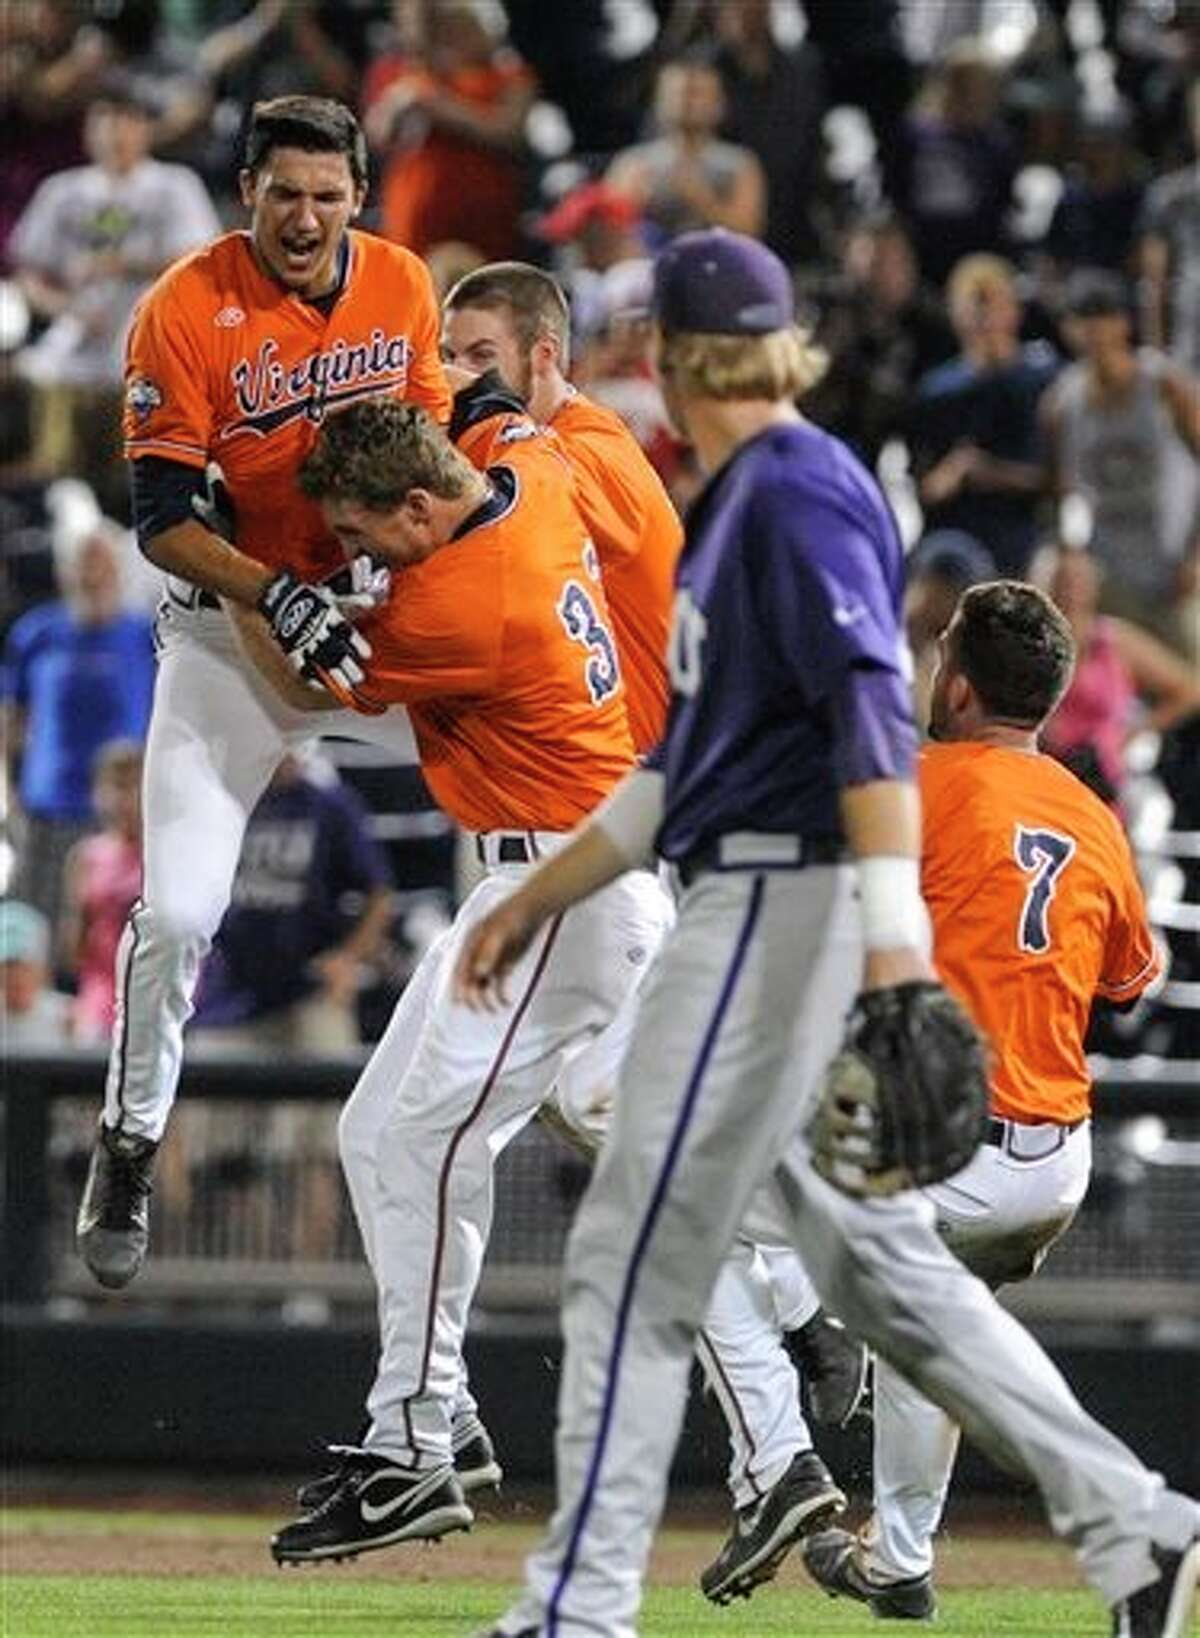 Virginia shortstop Daniel Pinero, left, celebrates with Thomas Woodruff (37) and others after winning 3-2 an NCAA baseball College World Series game against TCU in 15 innings in Omaha, Neb., Wednesday, June 18, 2014. TCU's Kevin Cron is looking on in the foreground. (AP Photo/Eric Francis)